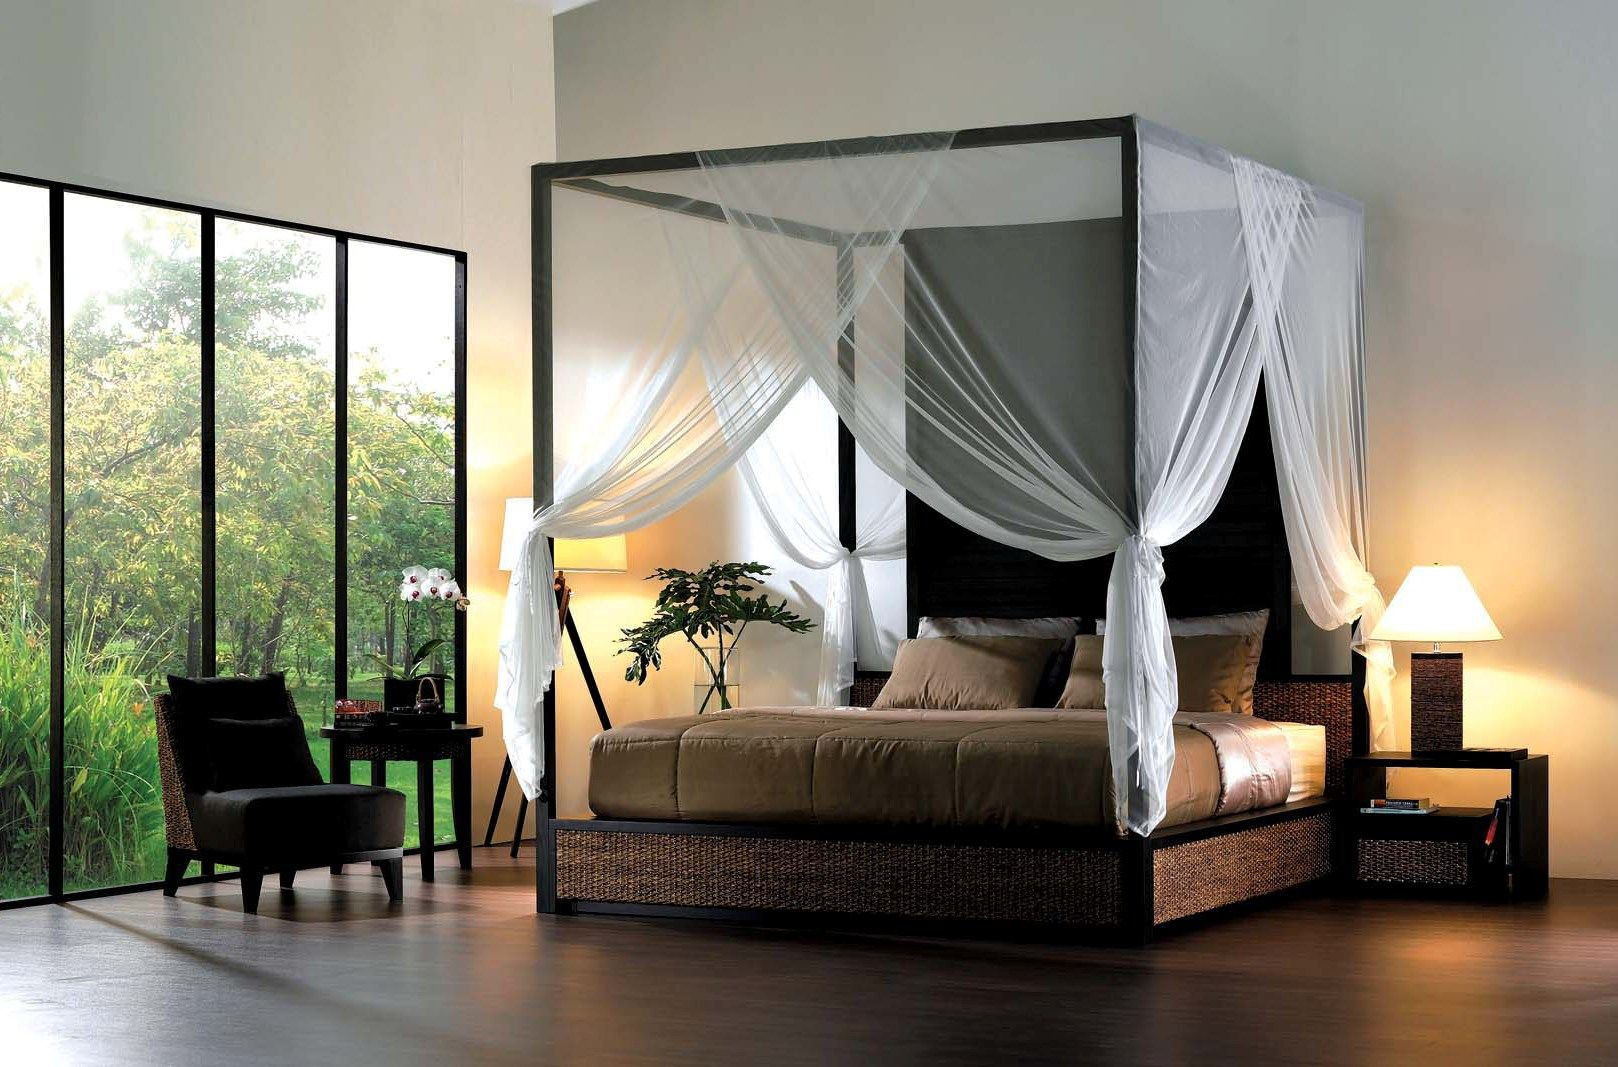 Canopy Bed Modern a history on canopy beds | bed room | pinterest | beds, canopy